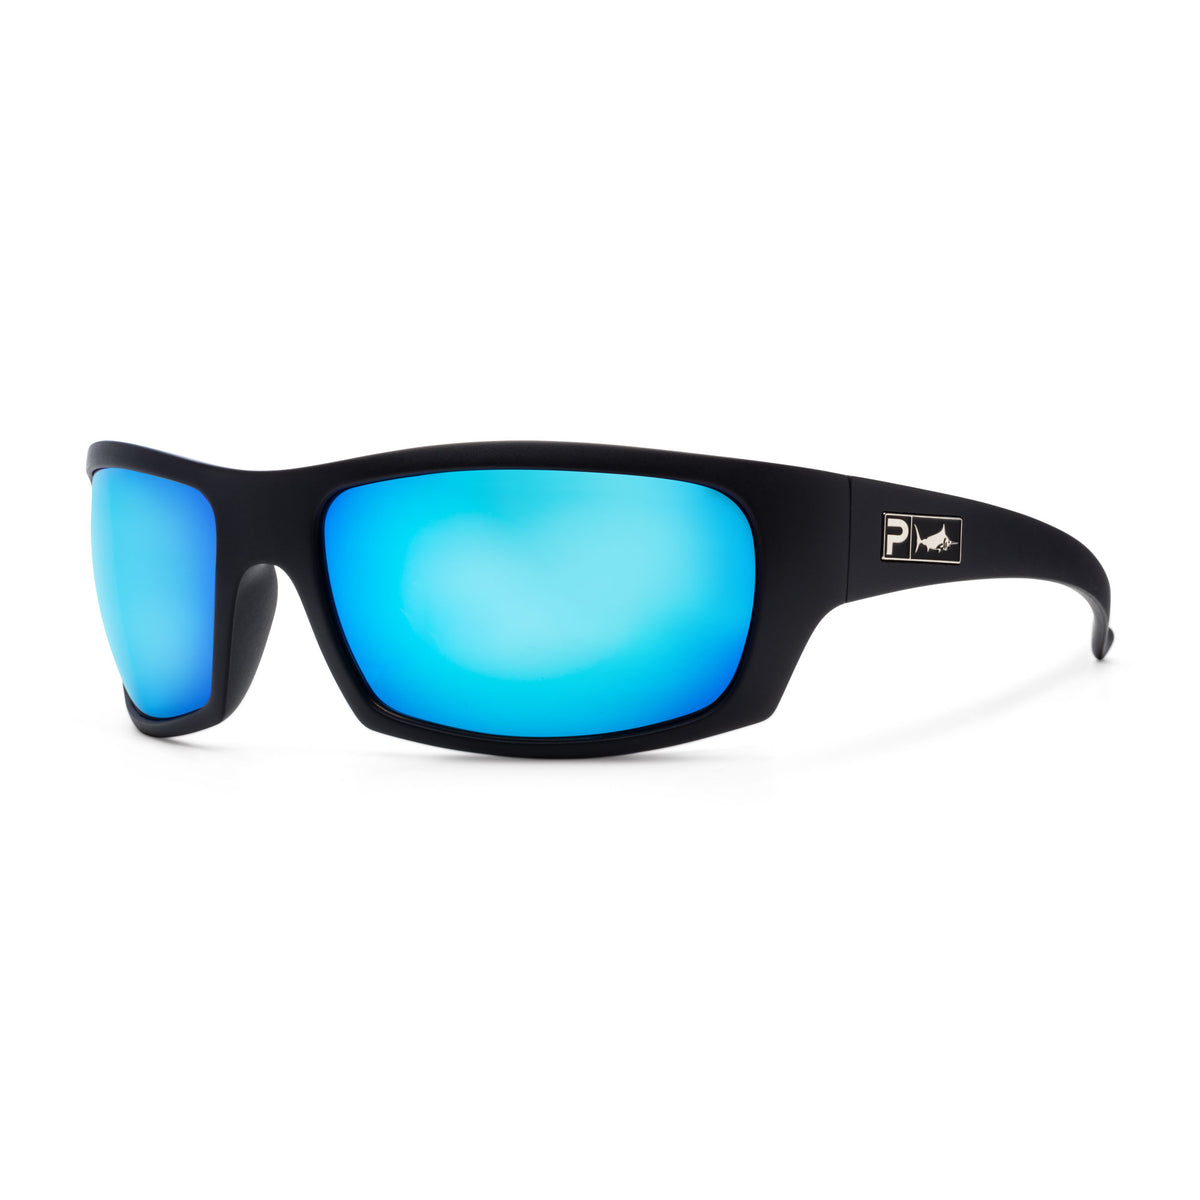 The Mack - Polarized Polycarbonate Lens Big Image - 4